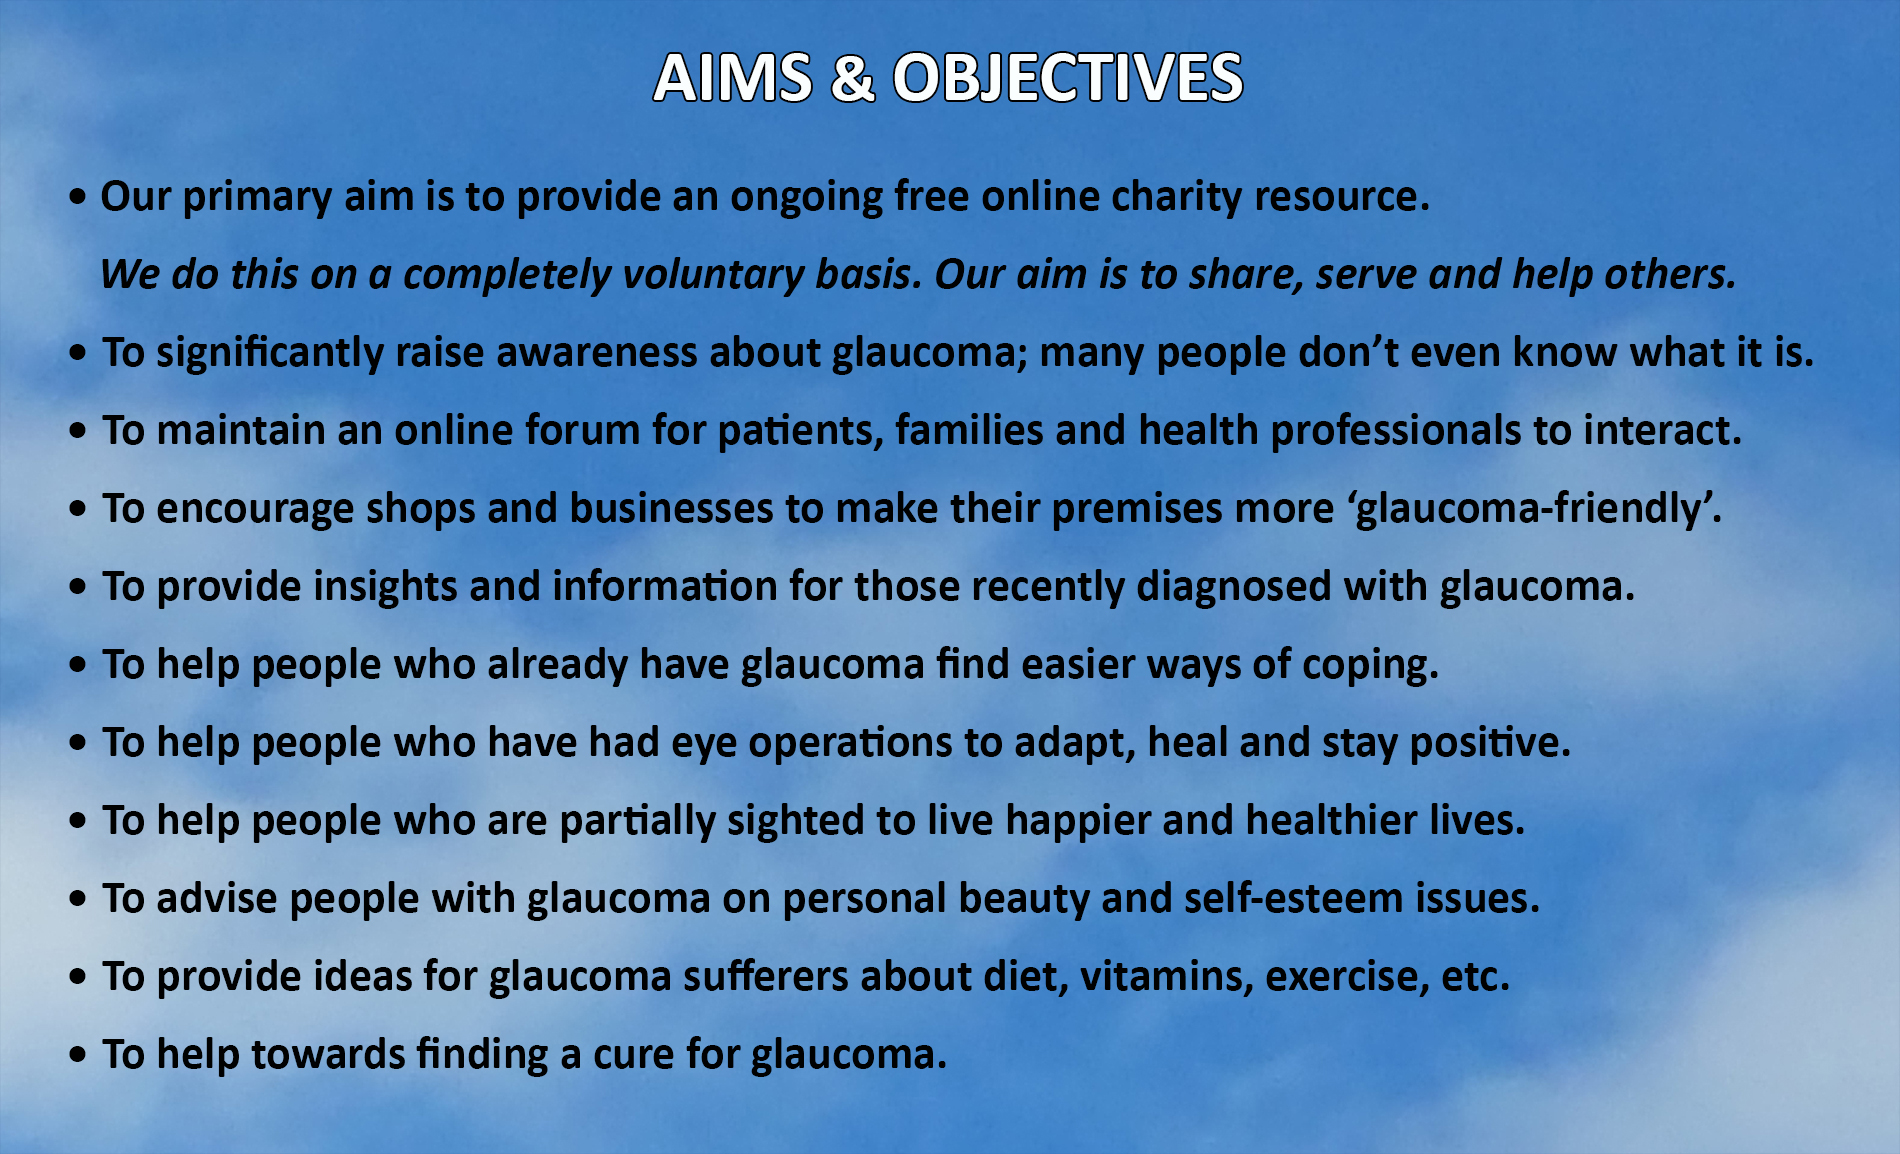 Glaucomarize Aims and Objectives